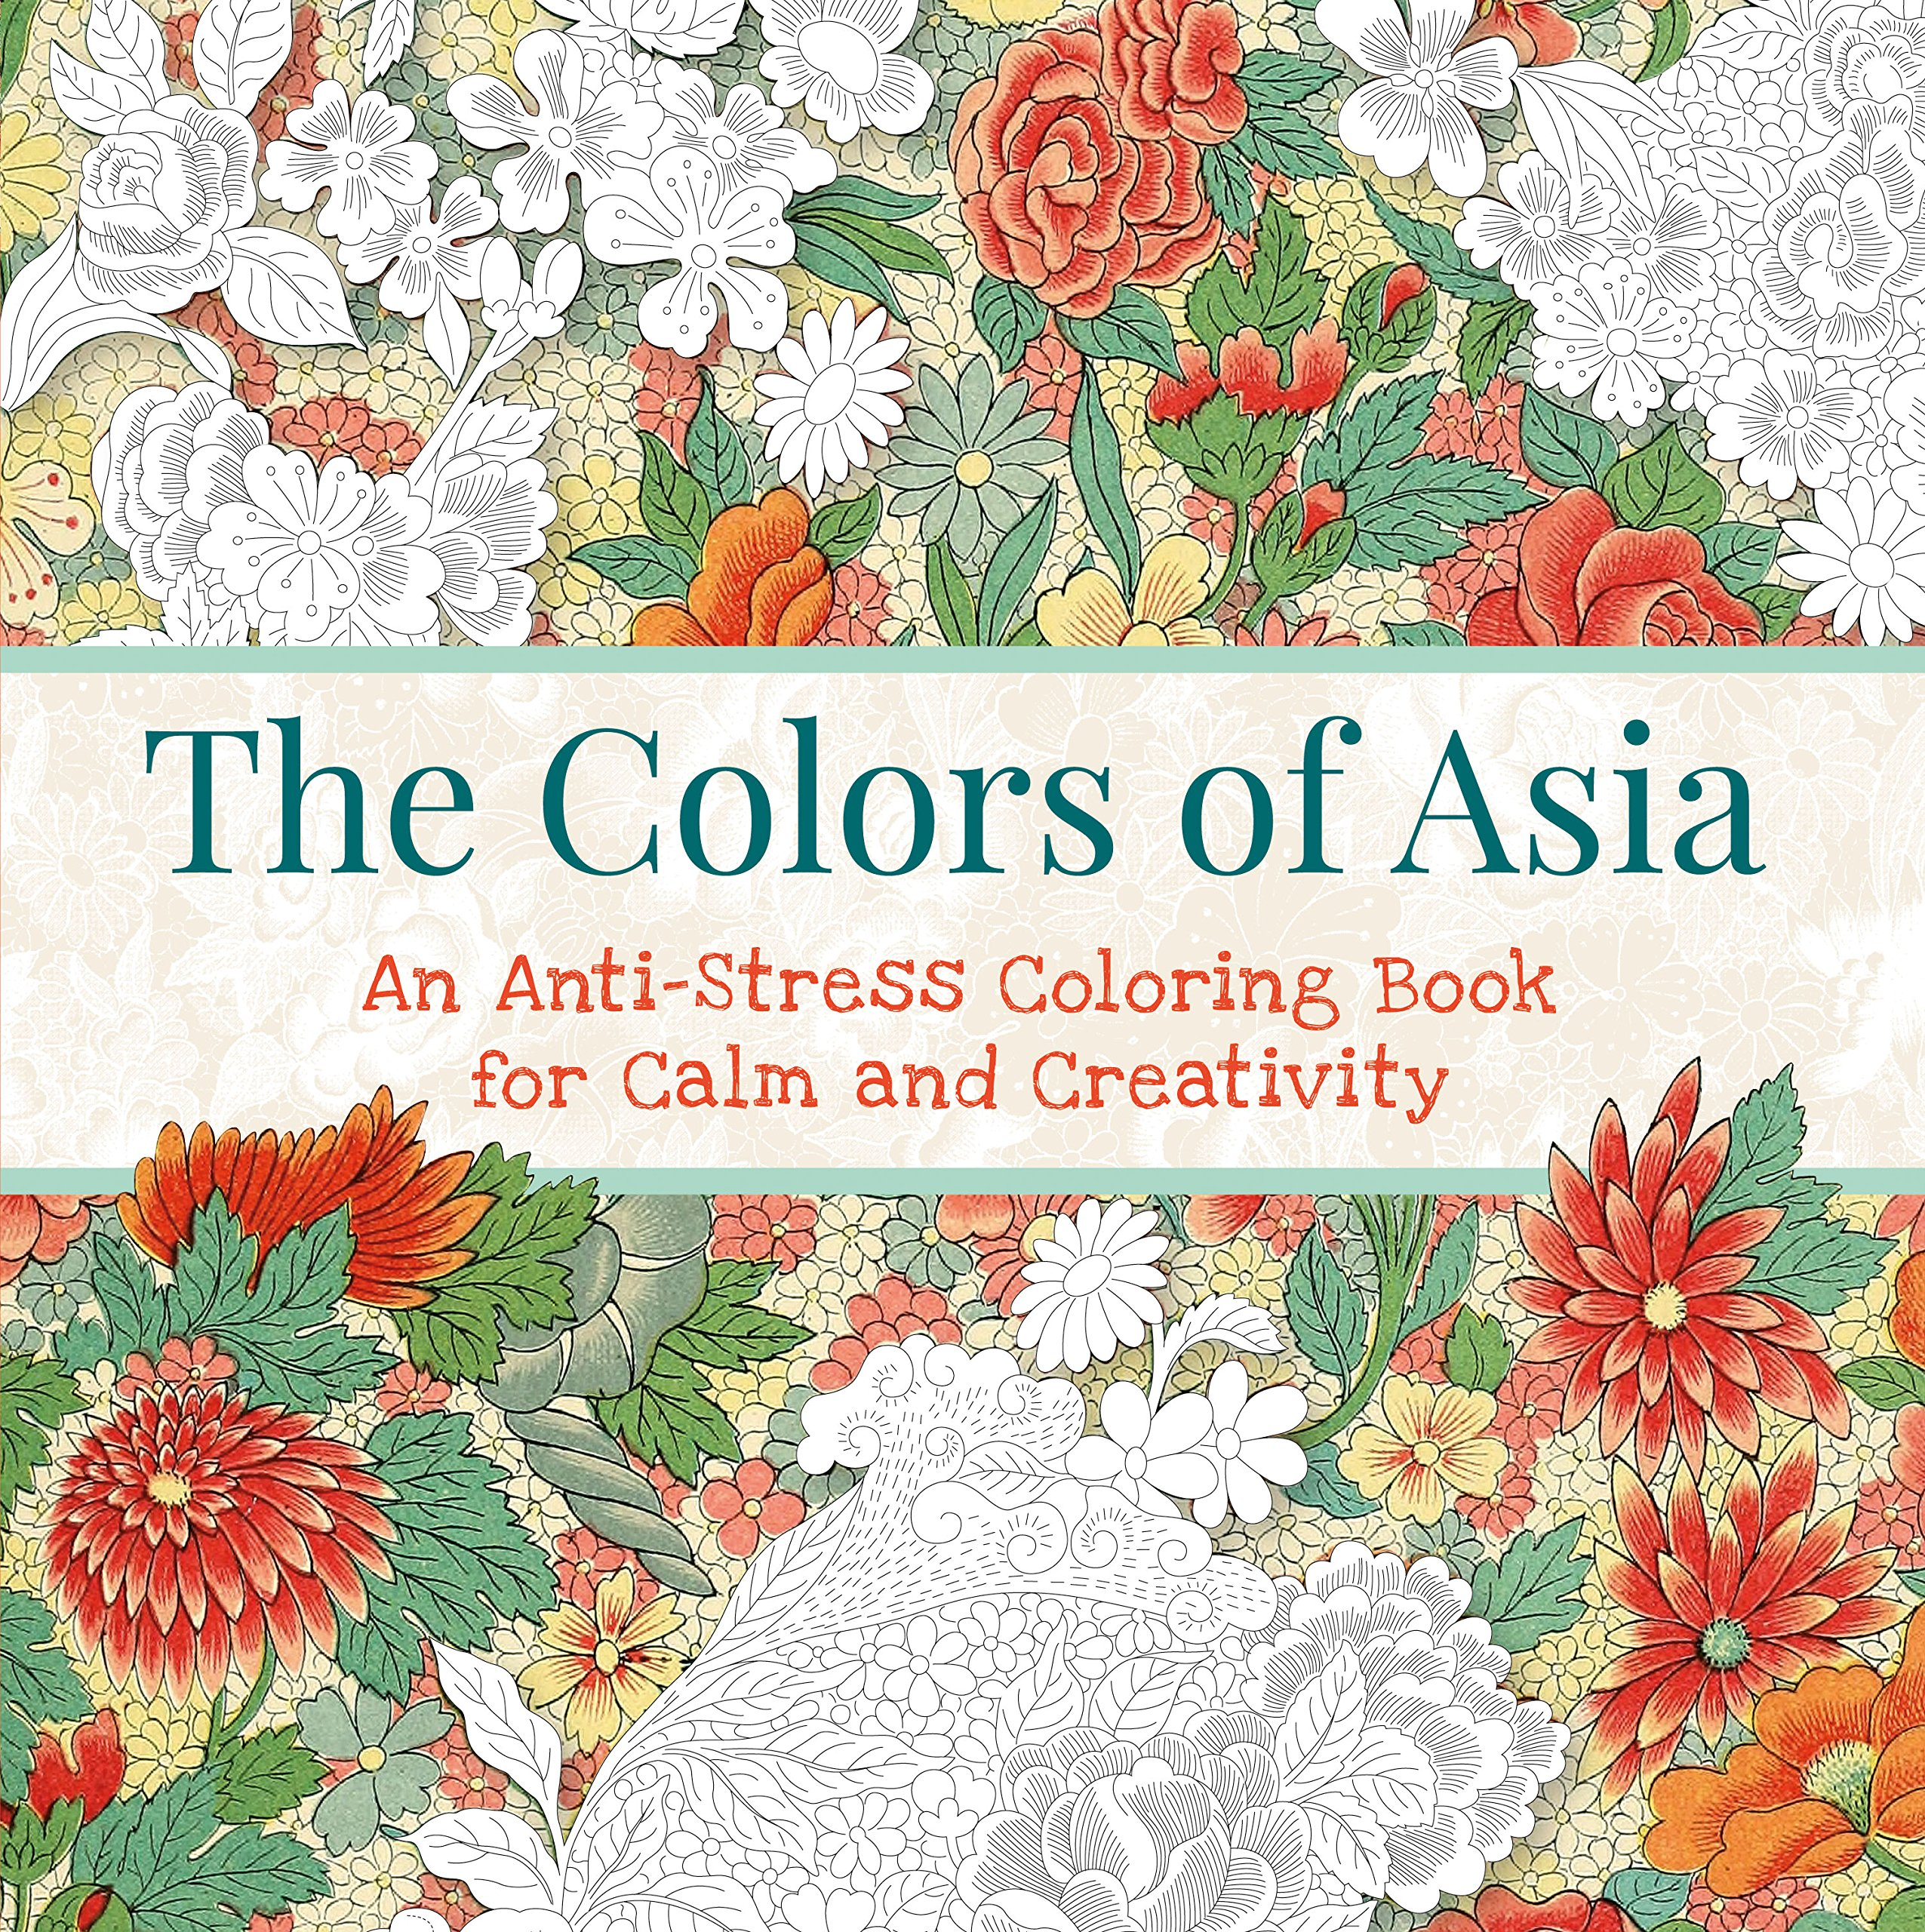 - The Colors Of Asia: An Anti-Stress Coloring Book For Calm And